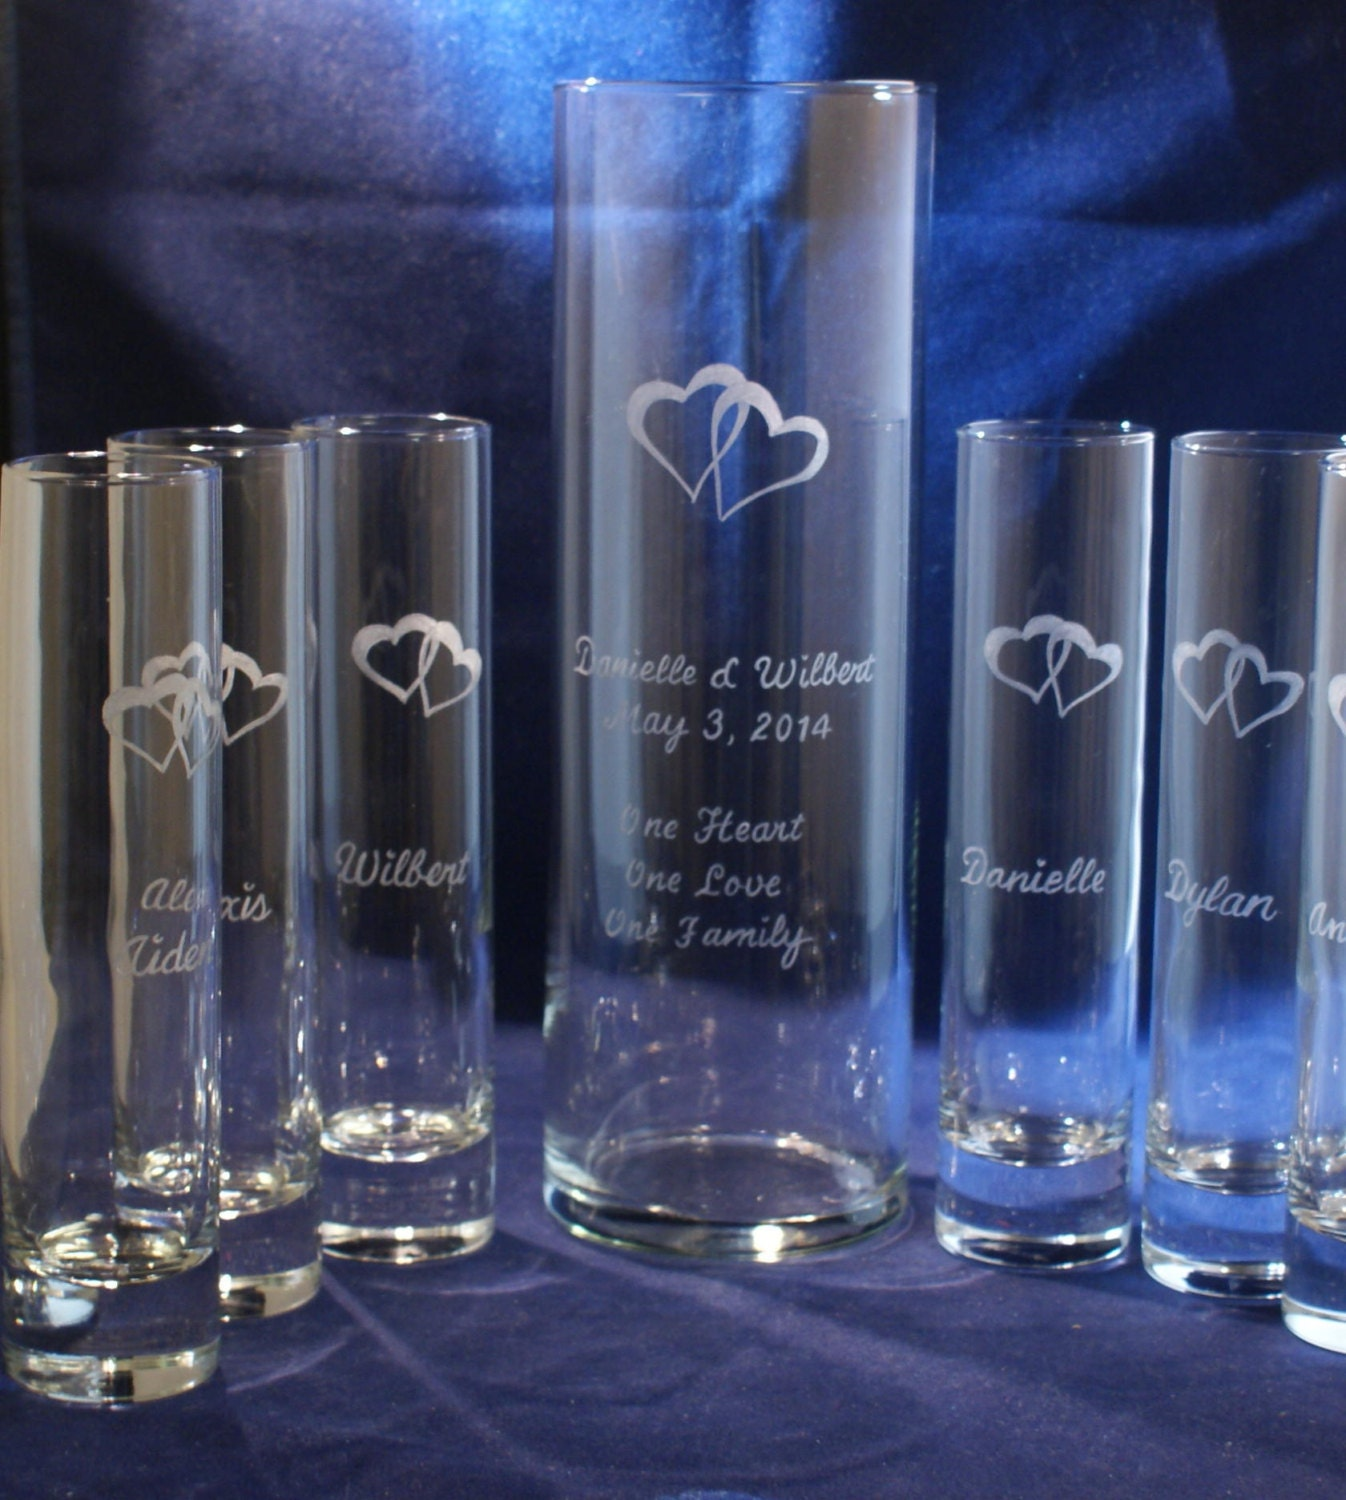 6 Piece Sand Ceremony Set With 10 X 3 Main Vase Engraved